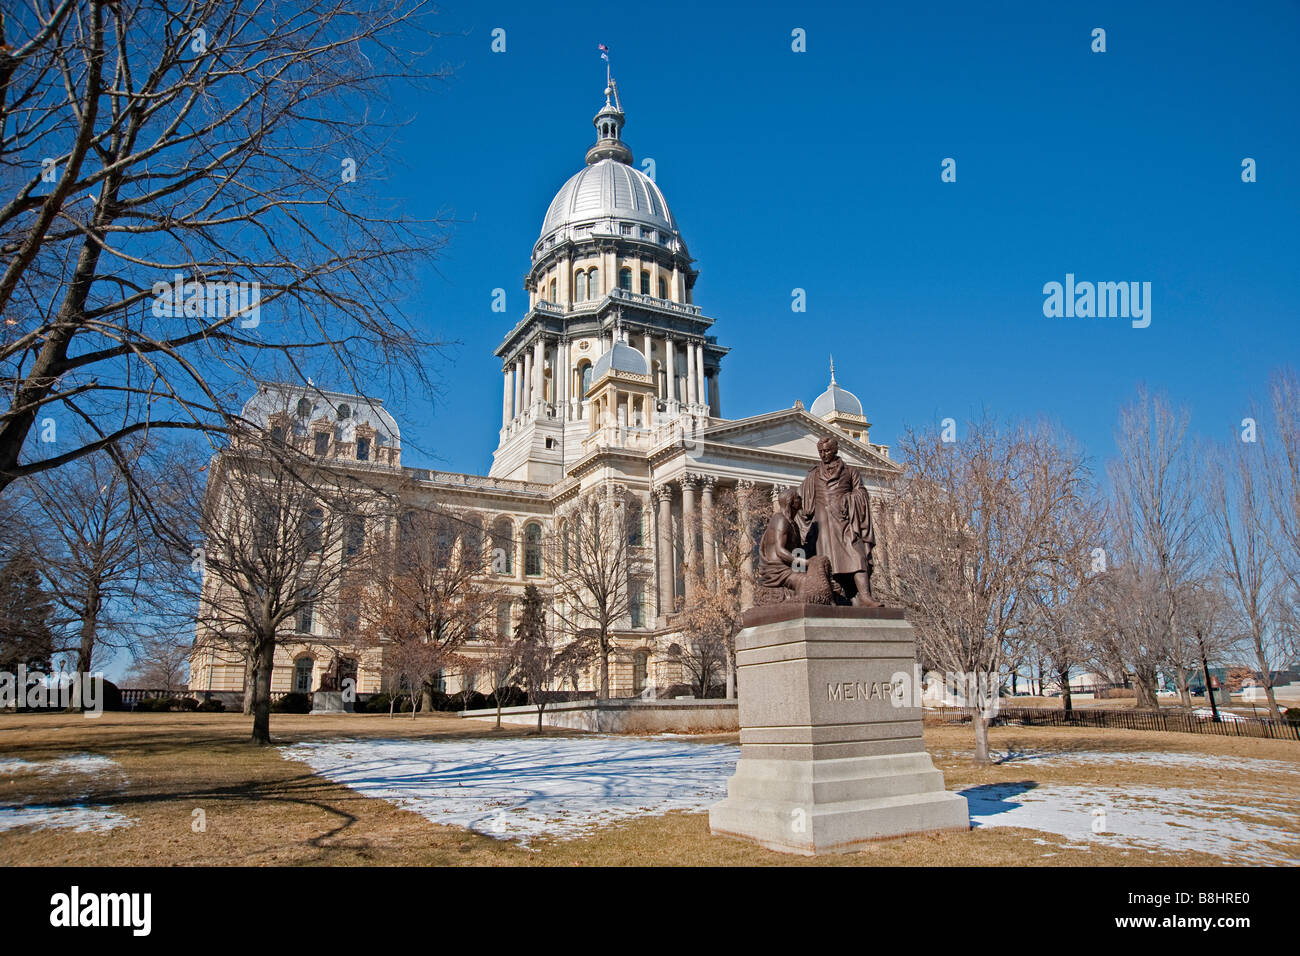 State of Illinois capitol building in Springfield, Illinois. - Stock Image